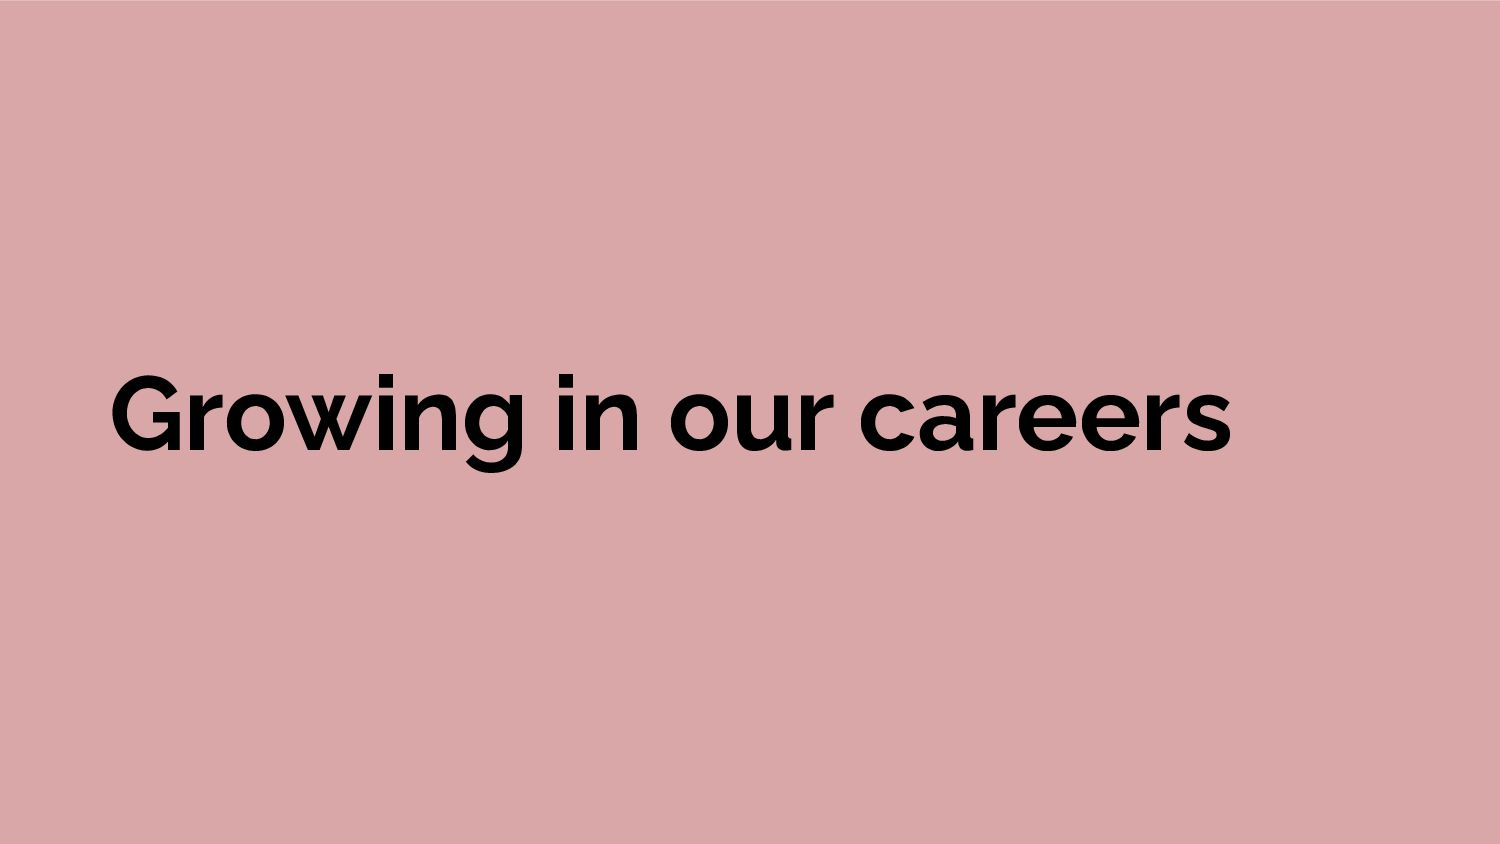 Growing in our careers